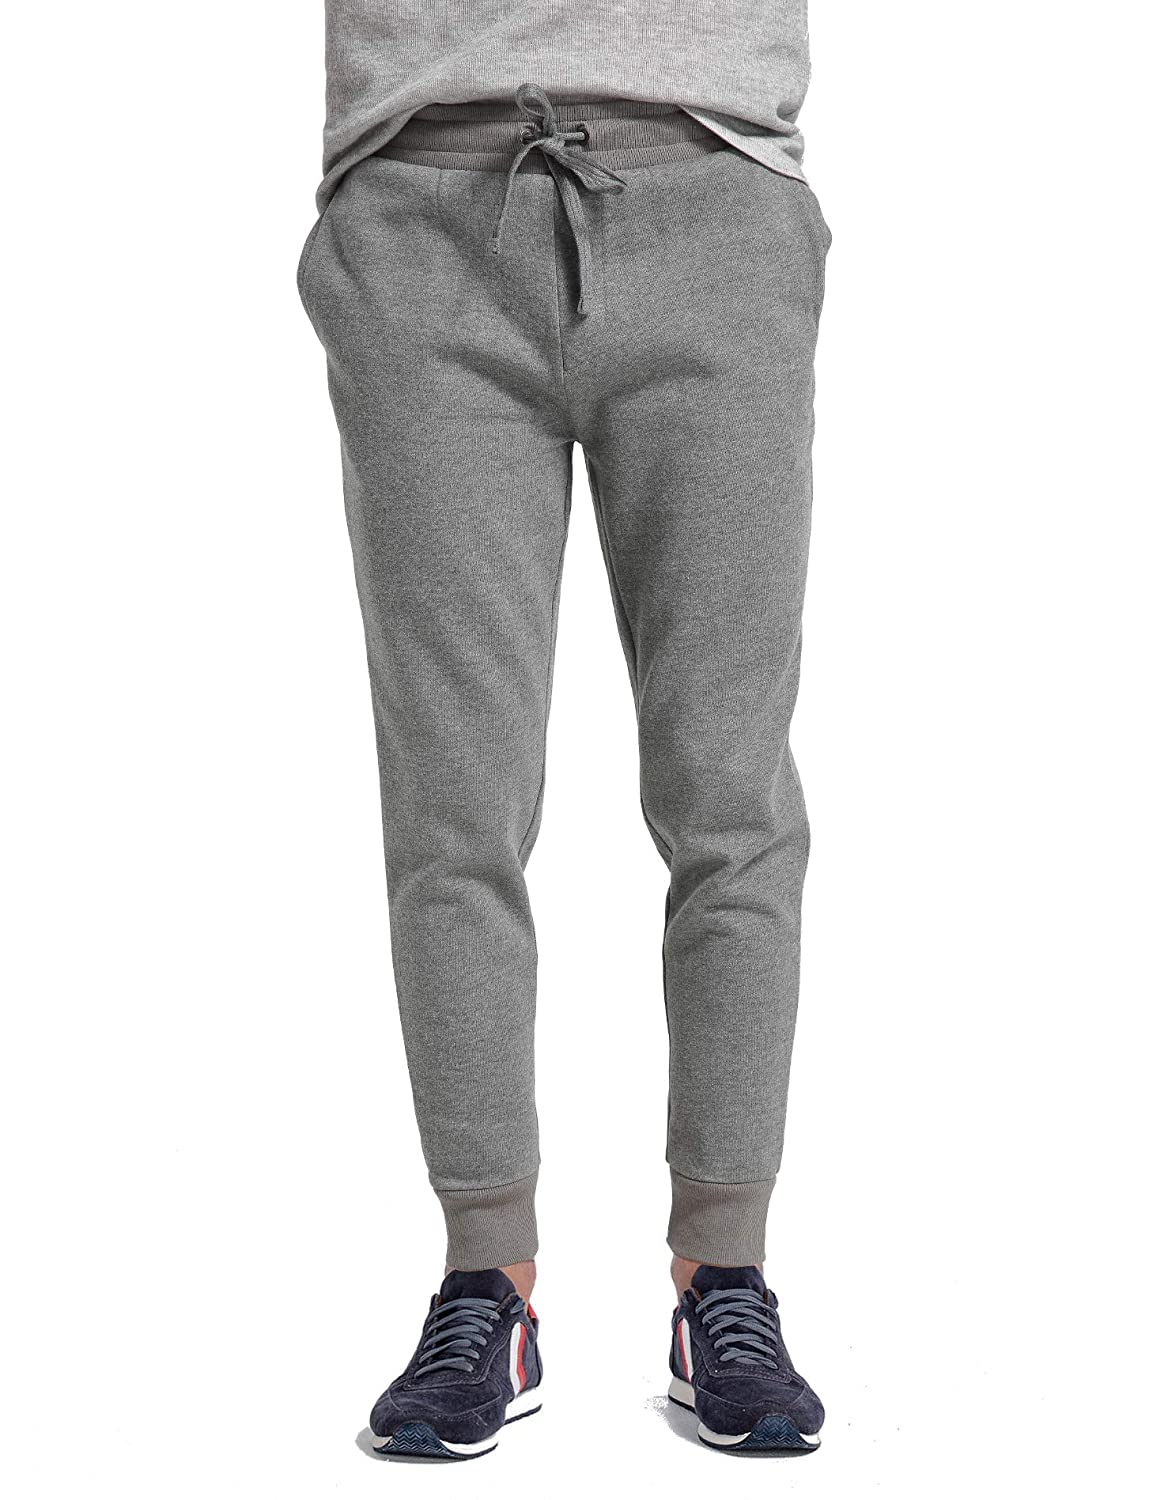 f7ebc6ad7b7d Amazon.com  CYZ Men s Jogger Sweatpants Tracksuit Bottoms Training Running  Trousers  Clothing